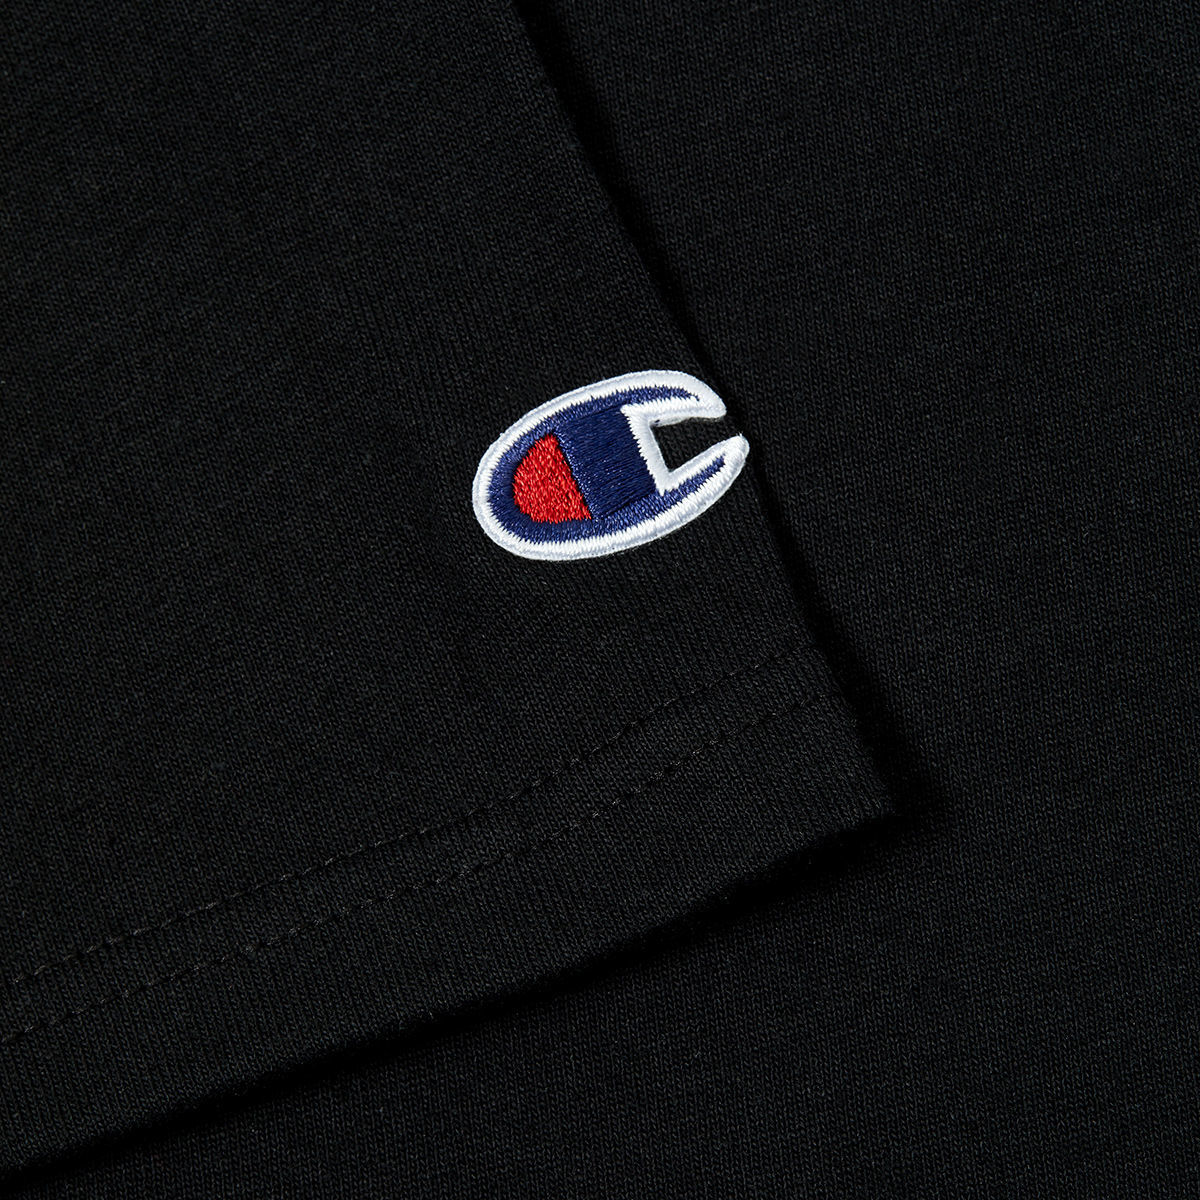 KROM x Champion T shirt Black